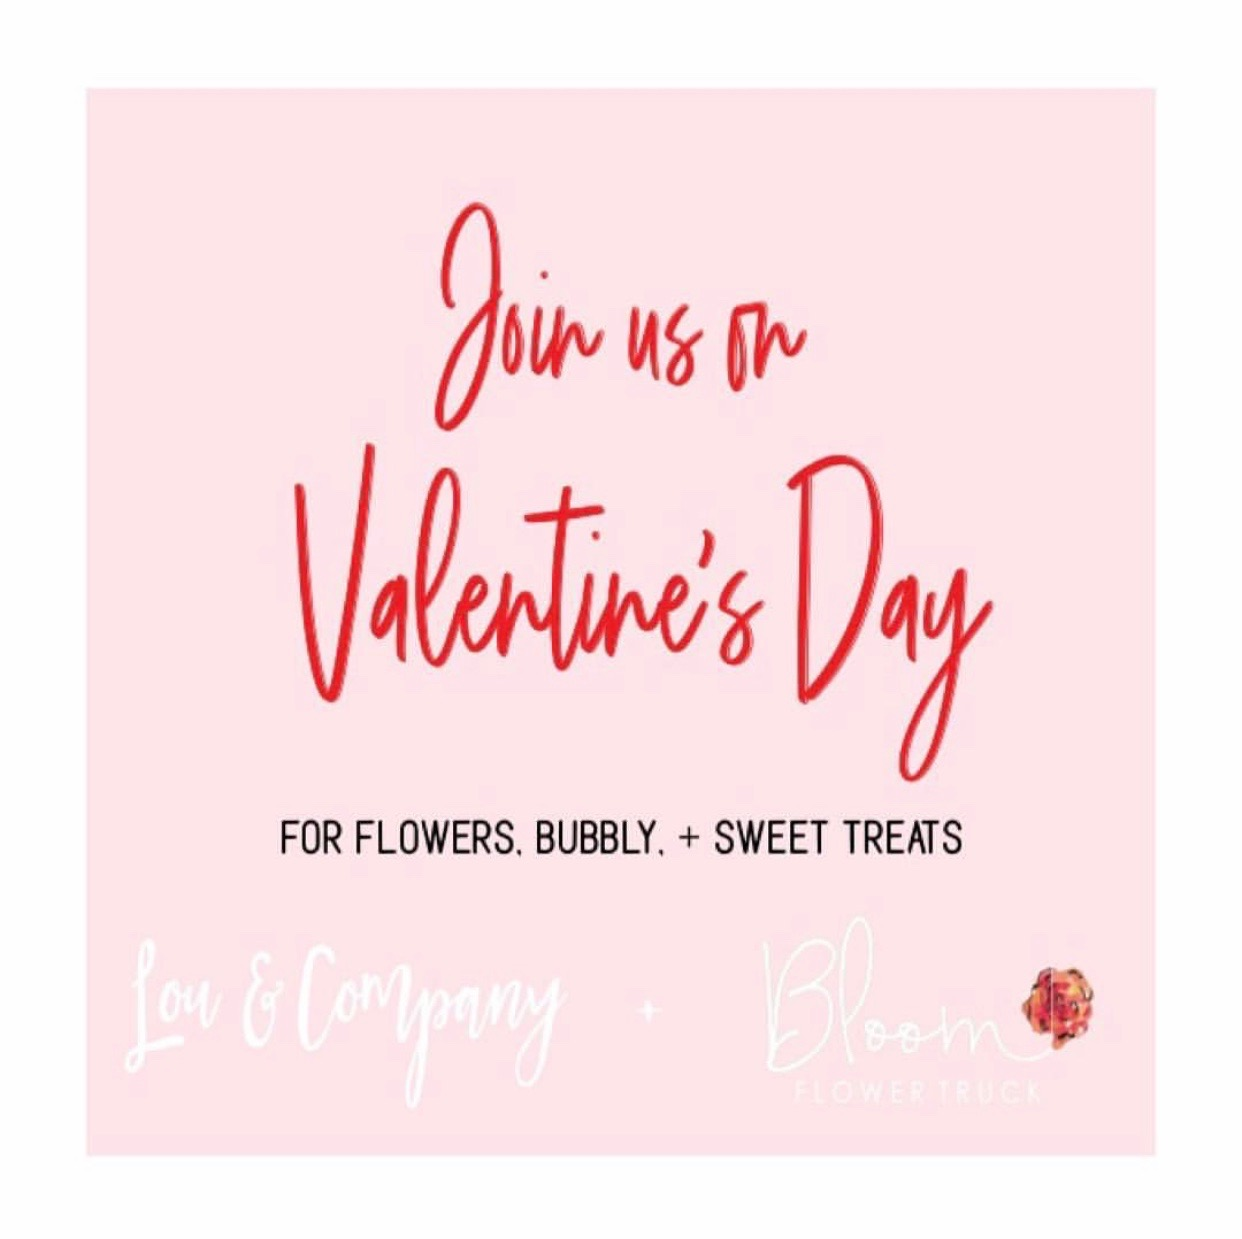 the official Lou & company valentine's day party advertisement